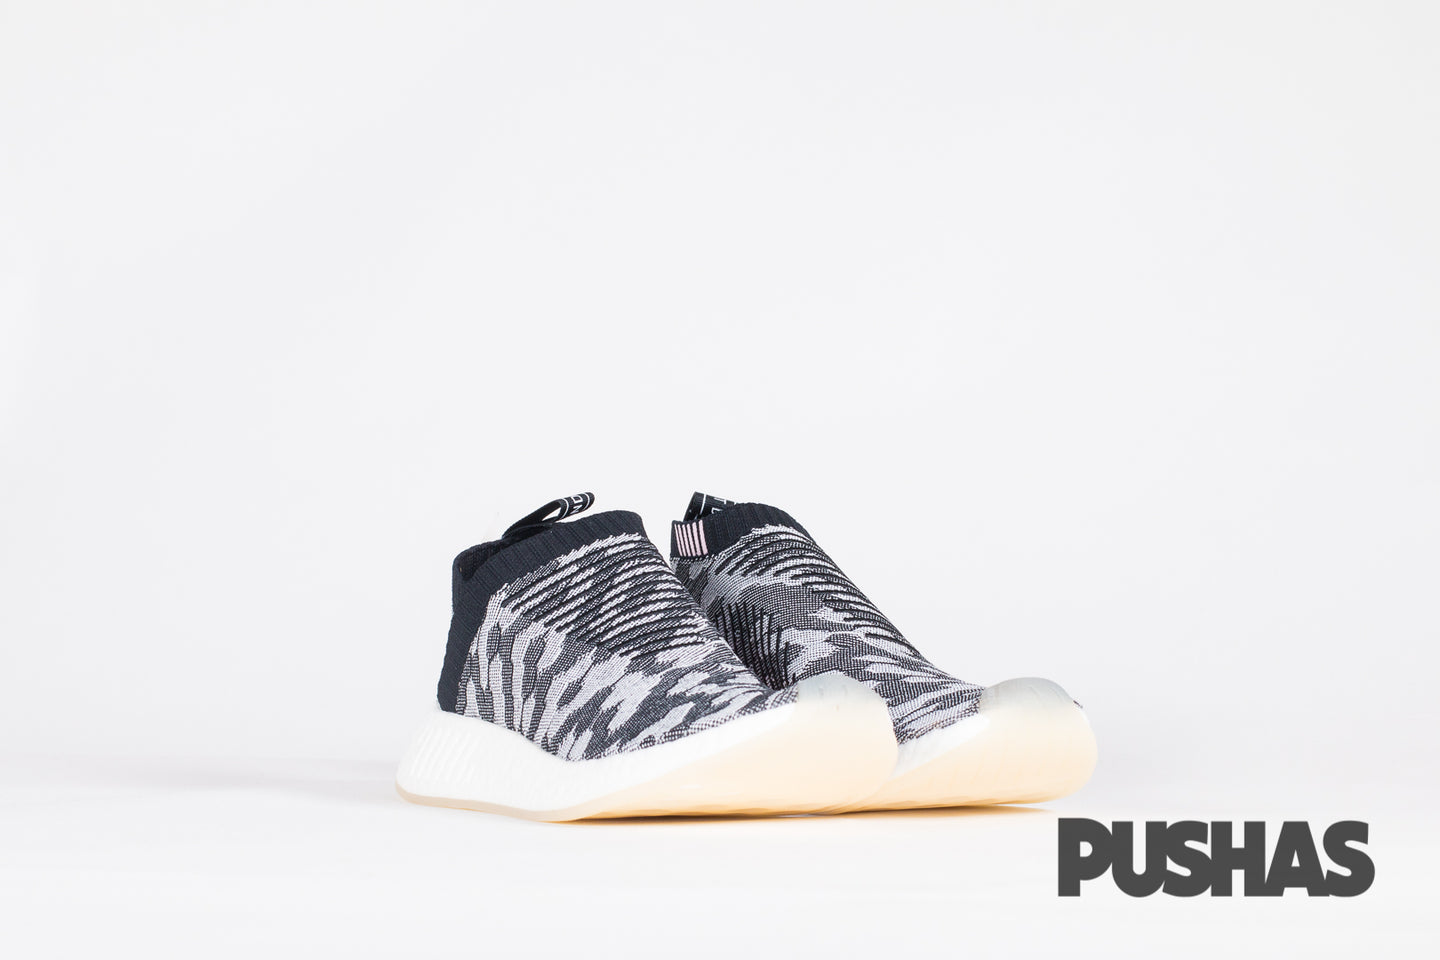 NMD_CS2 PK W - Black/Wonder Pink (New)